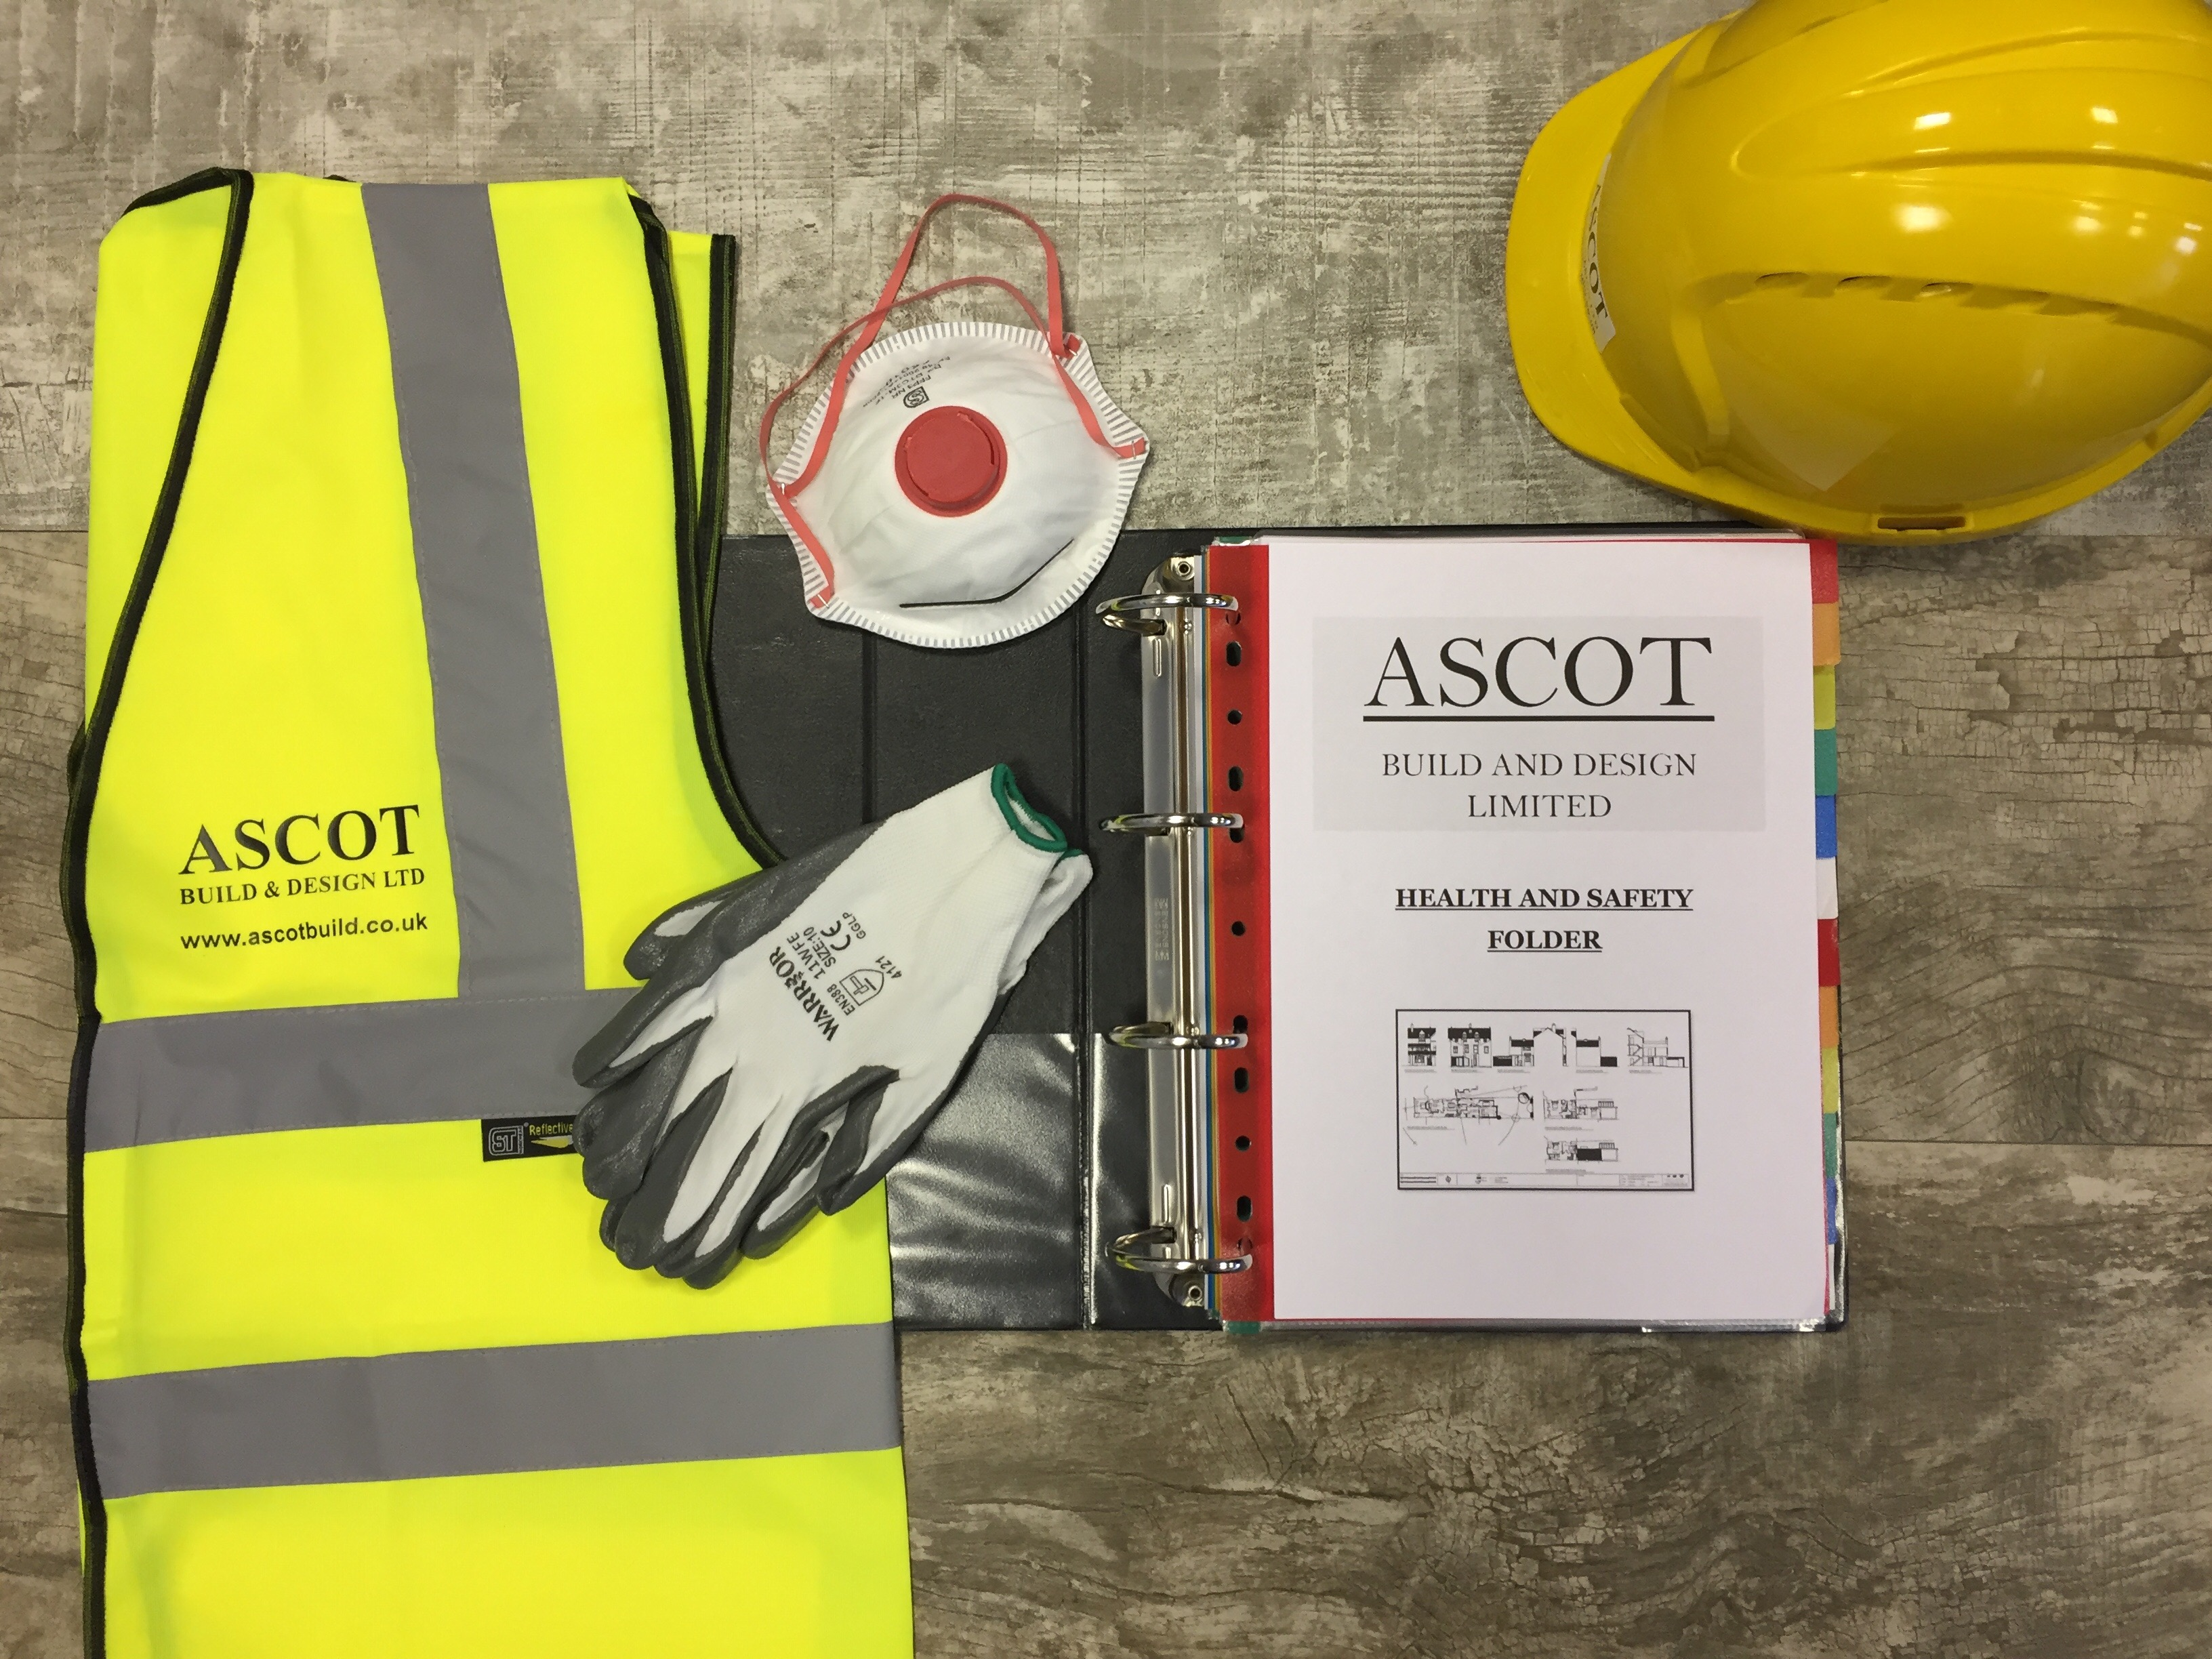 Ascot Health and Safety Folder